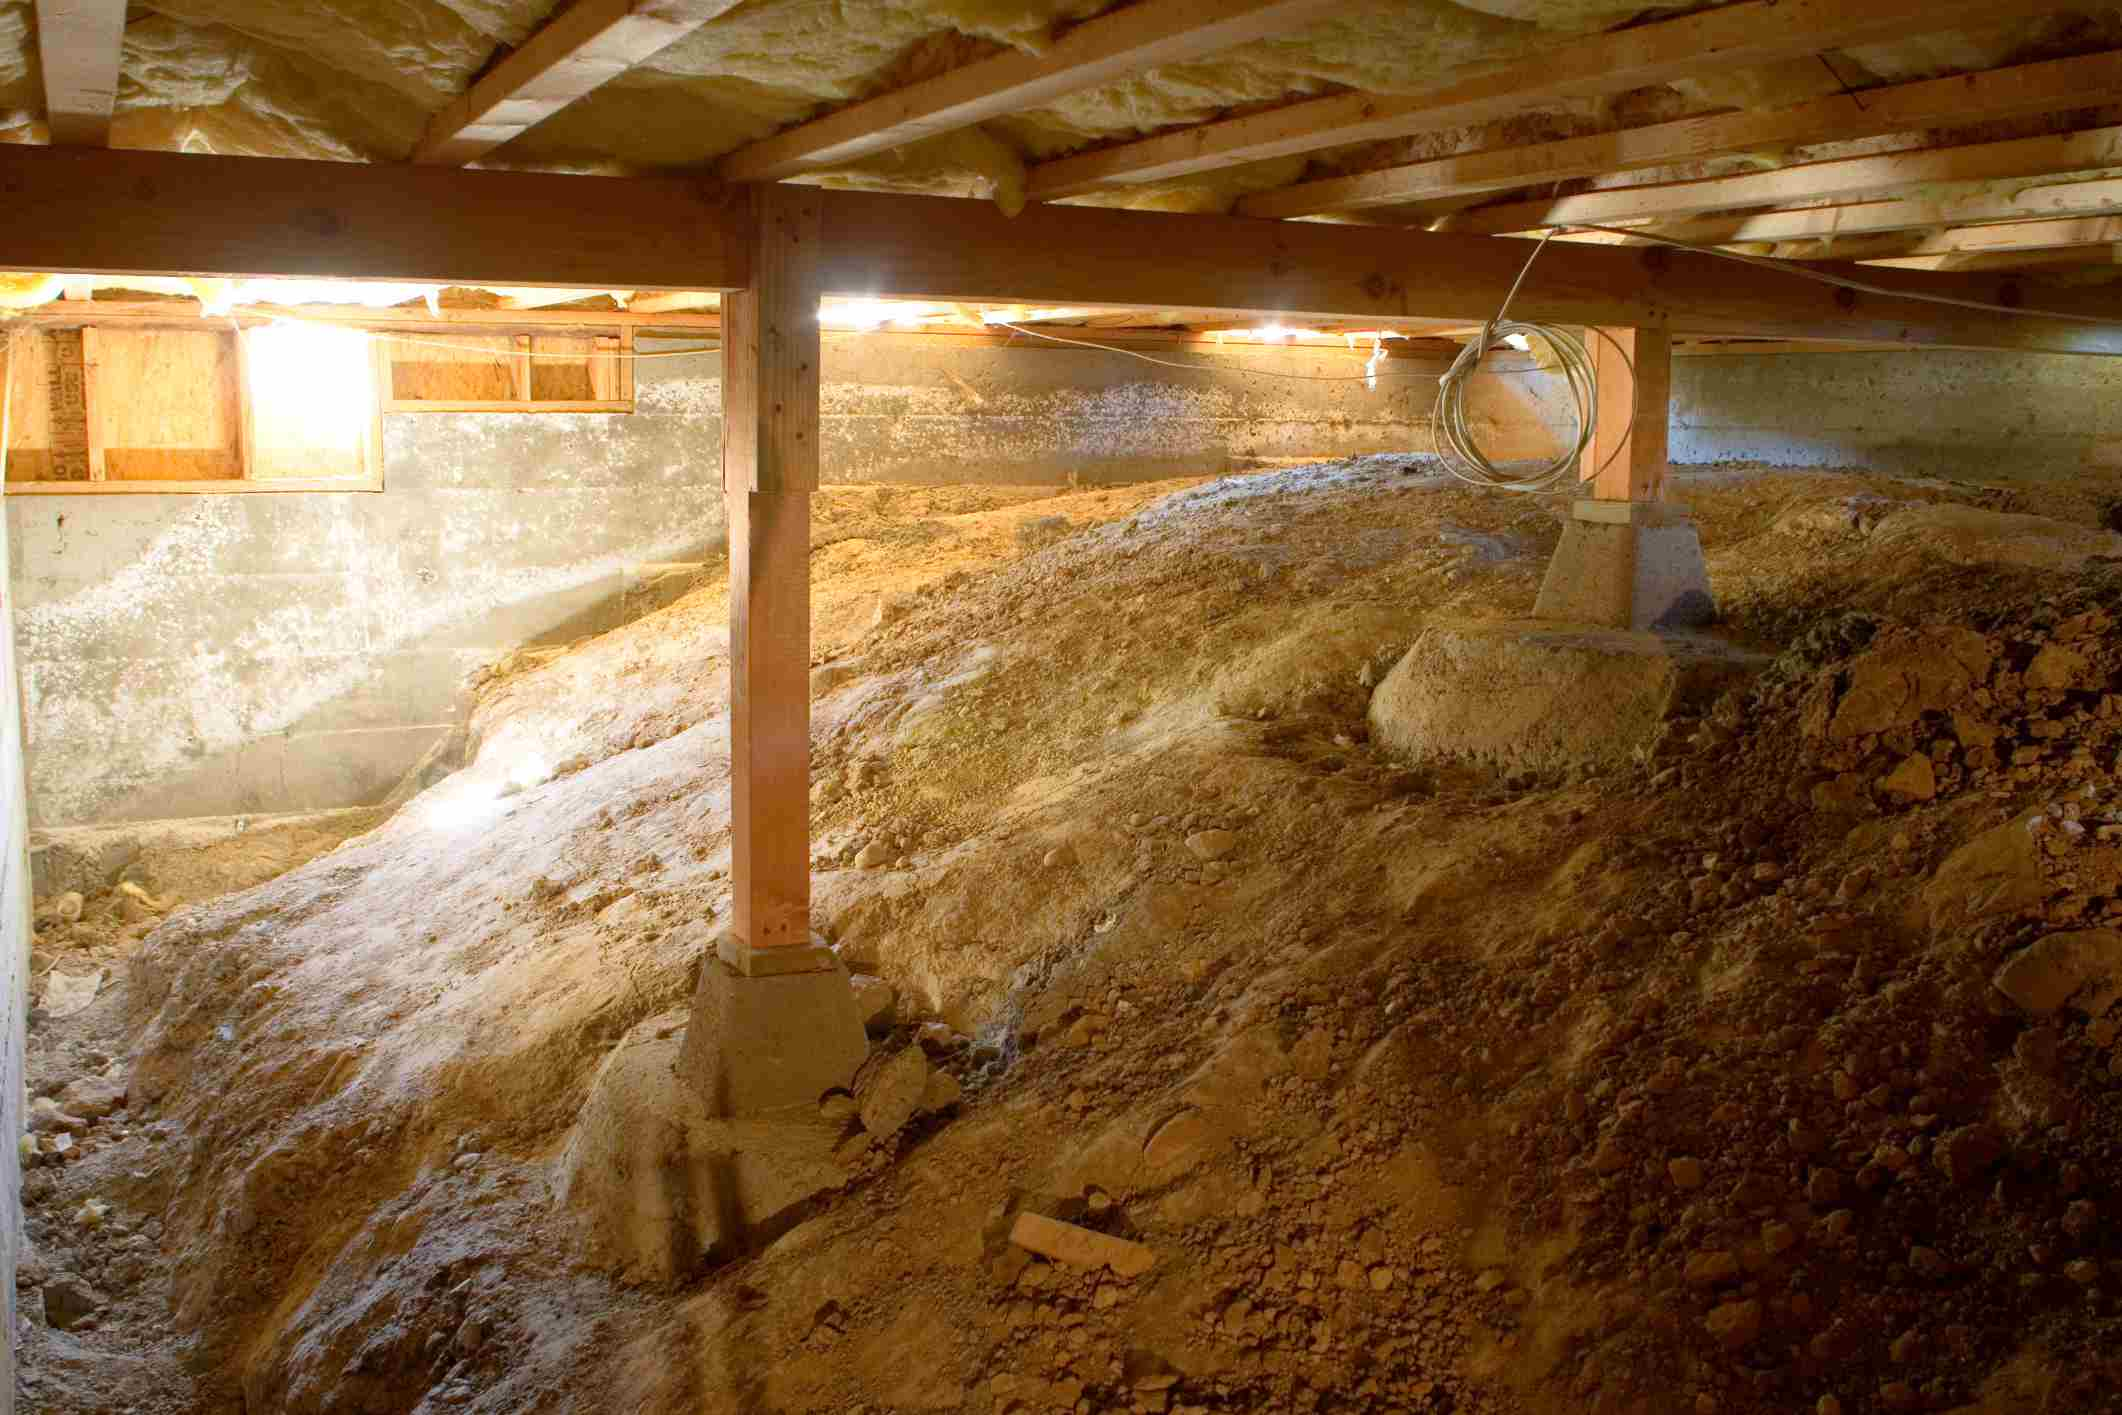 Luxury Convert Crawlspace to Basement